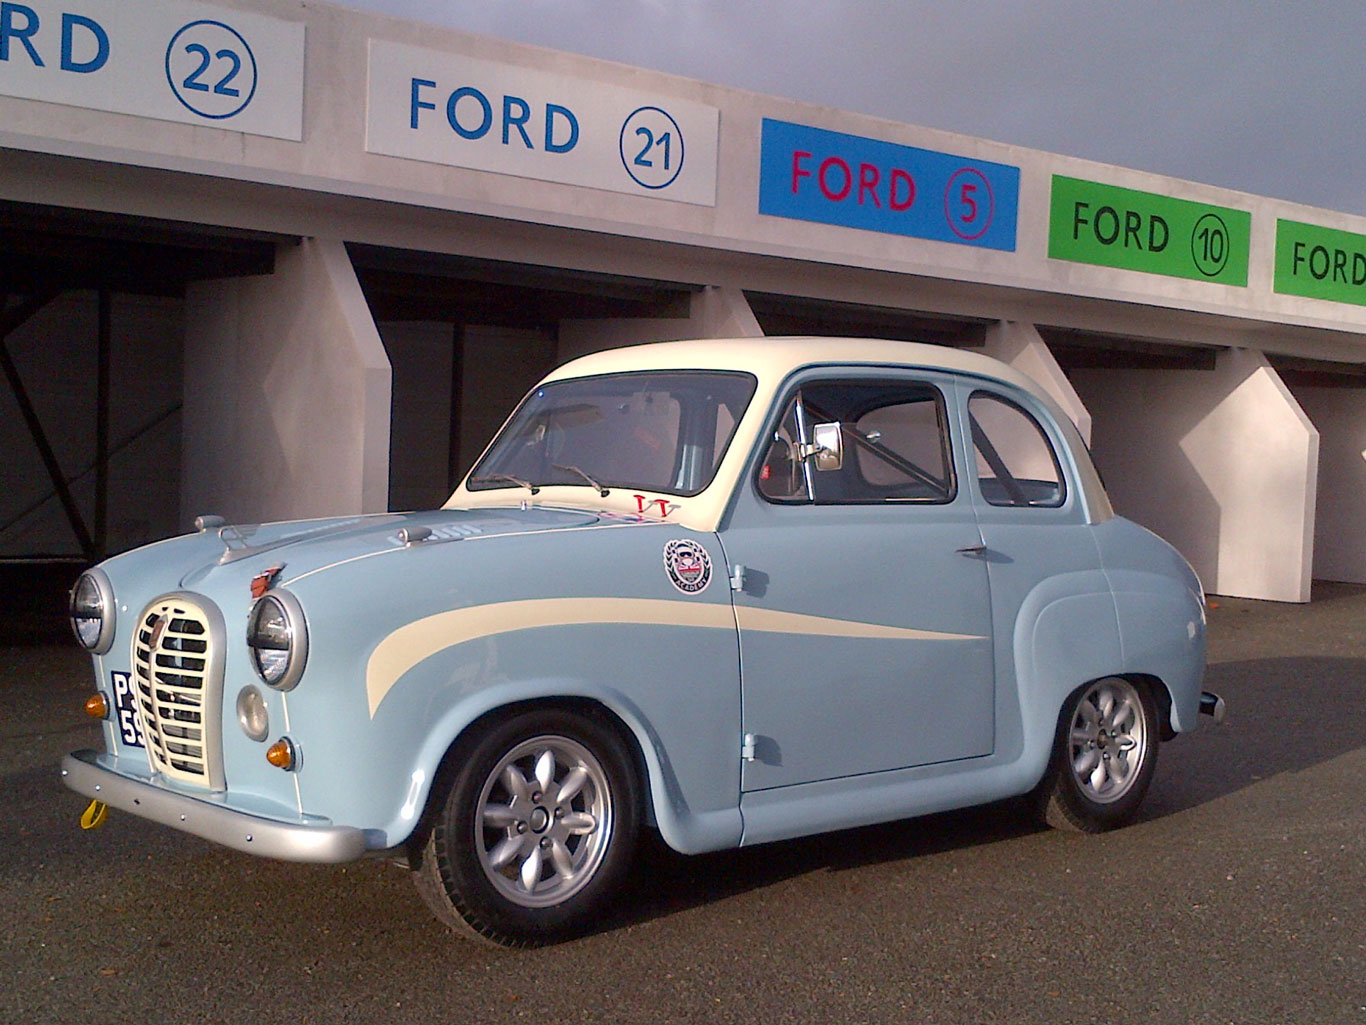 An Austin A35 prepared for HRDC Academy racing. It might not be a Ferrari, but it is a recipe for fun on for wheels.